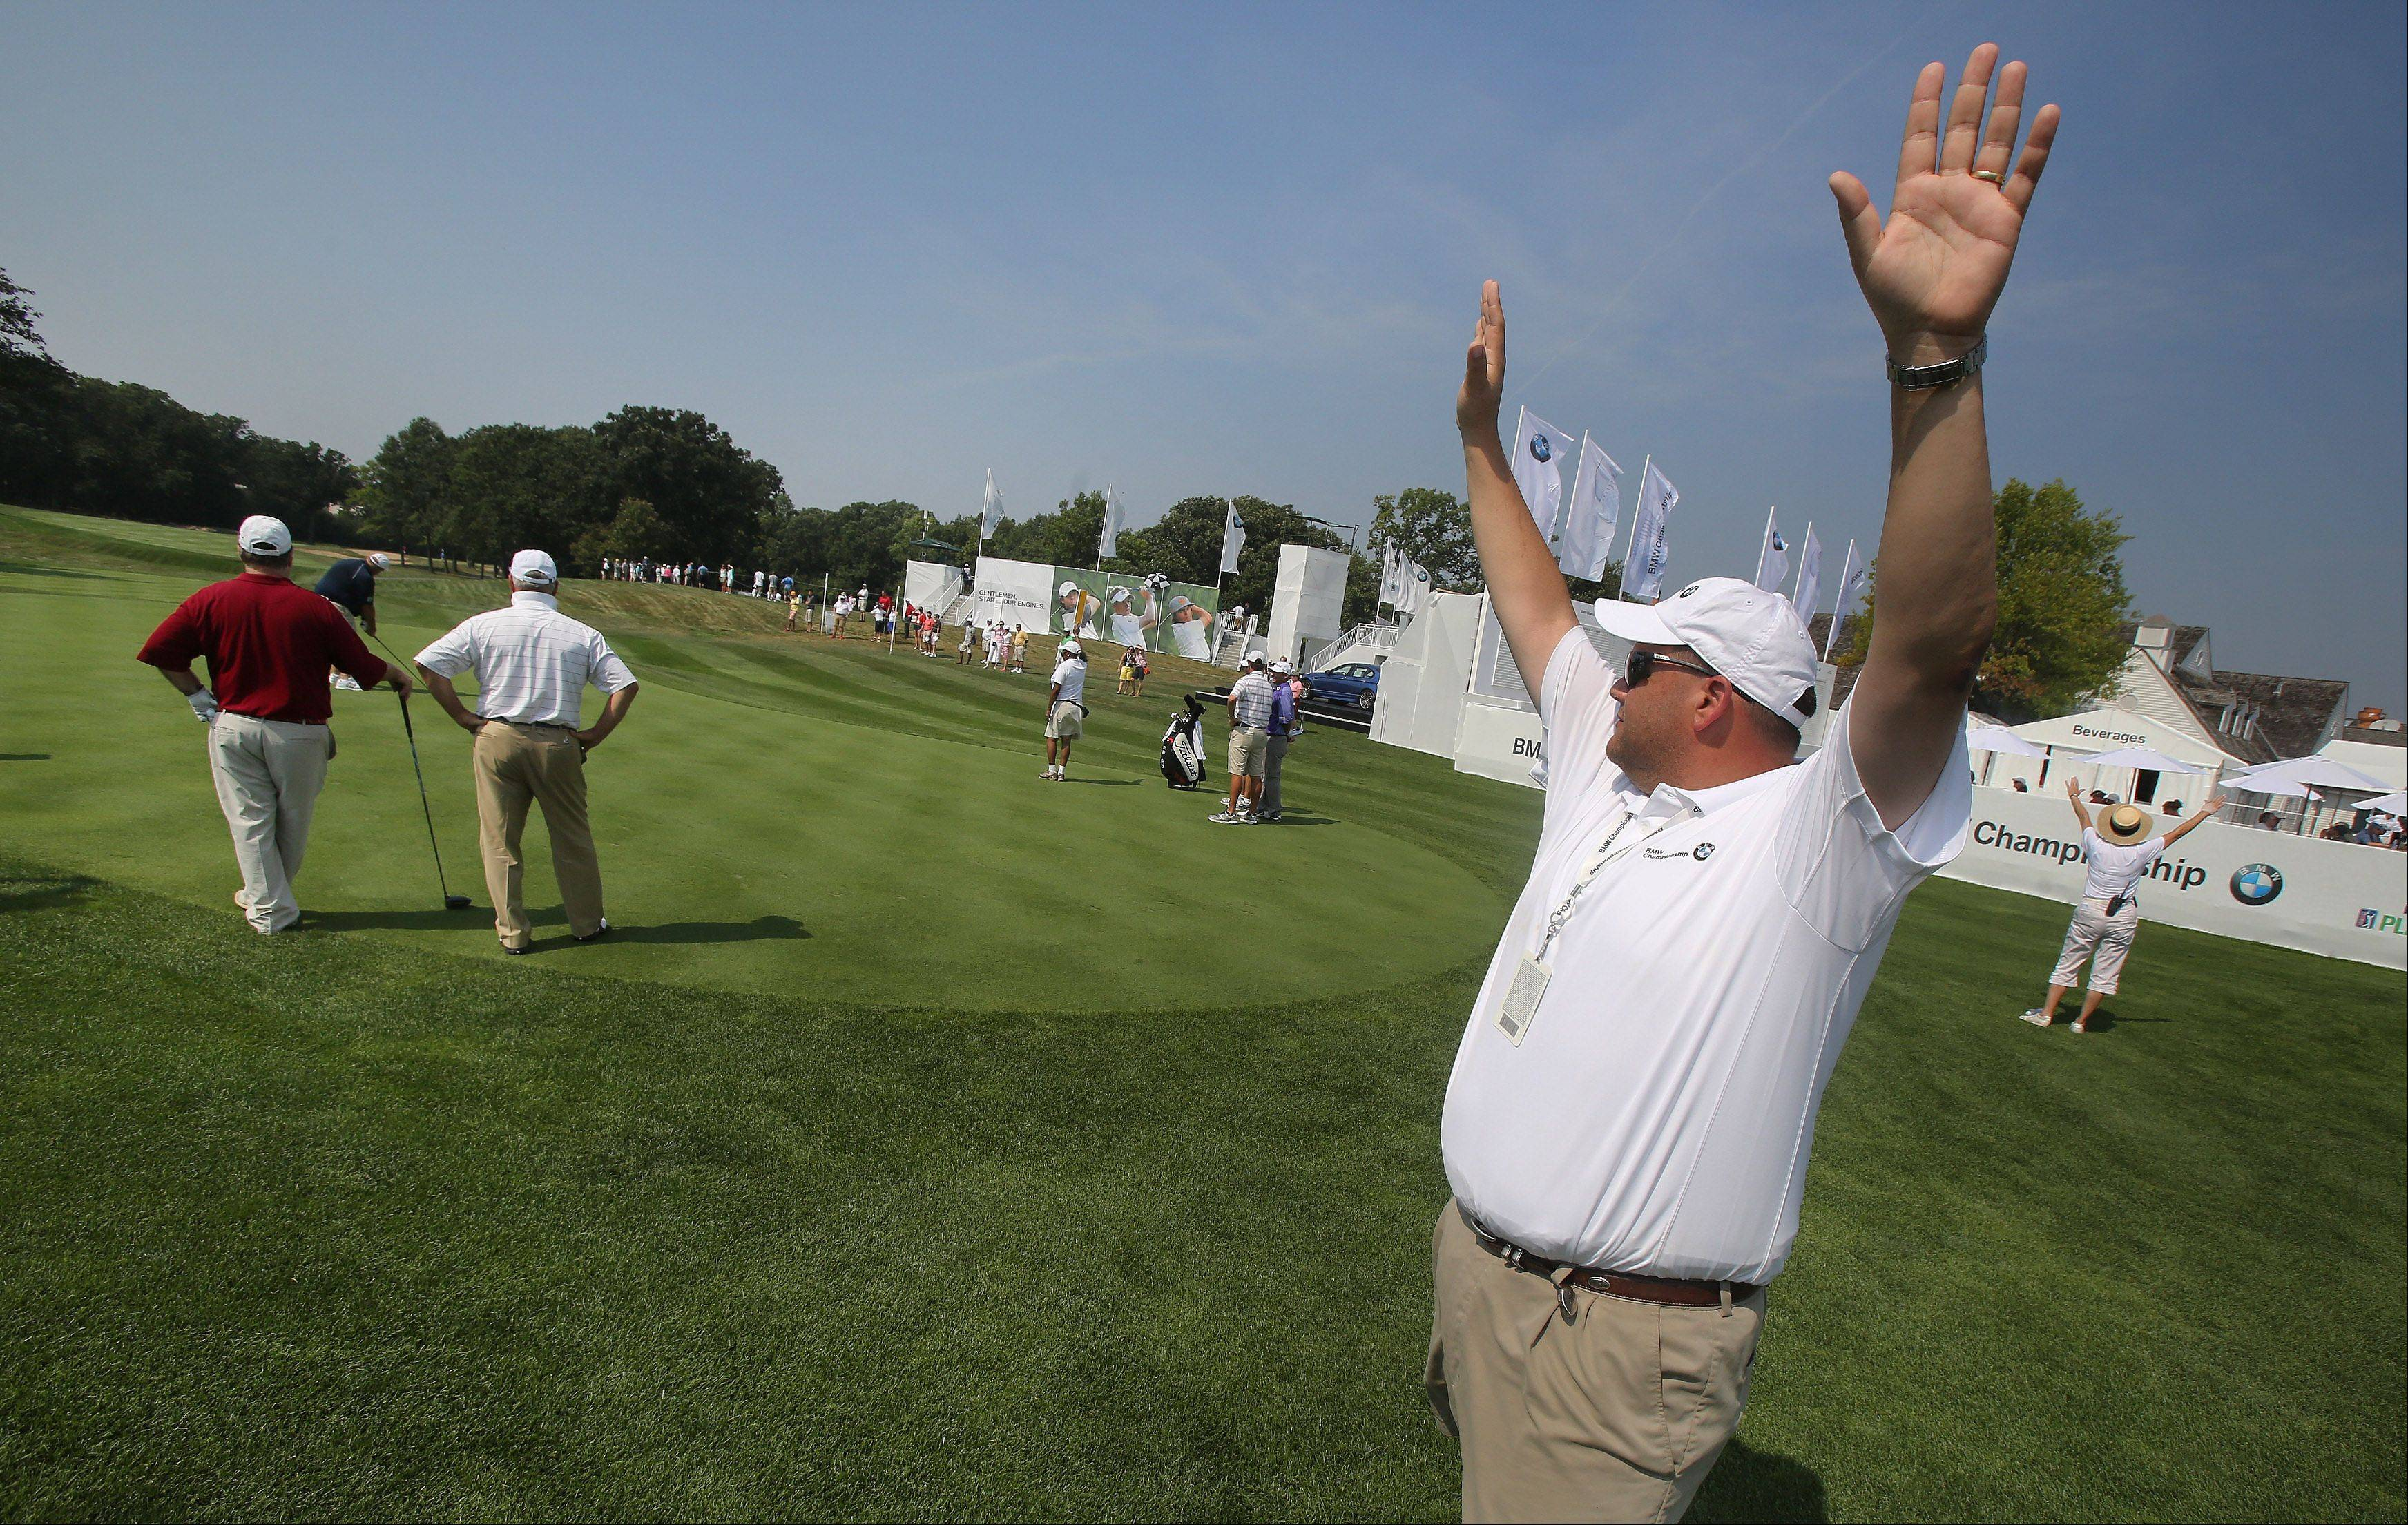 Volunteer Sean Finnegan of Lindenhurst holds up his hands to keep the crowd quiet on the first hole as golfers tee off for a practice round at the BMW Championship at Conway Farms Golf Club in Lake Forest.